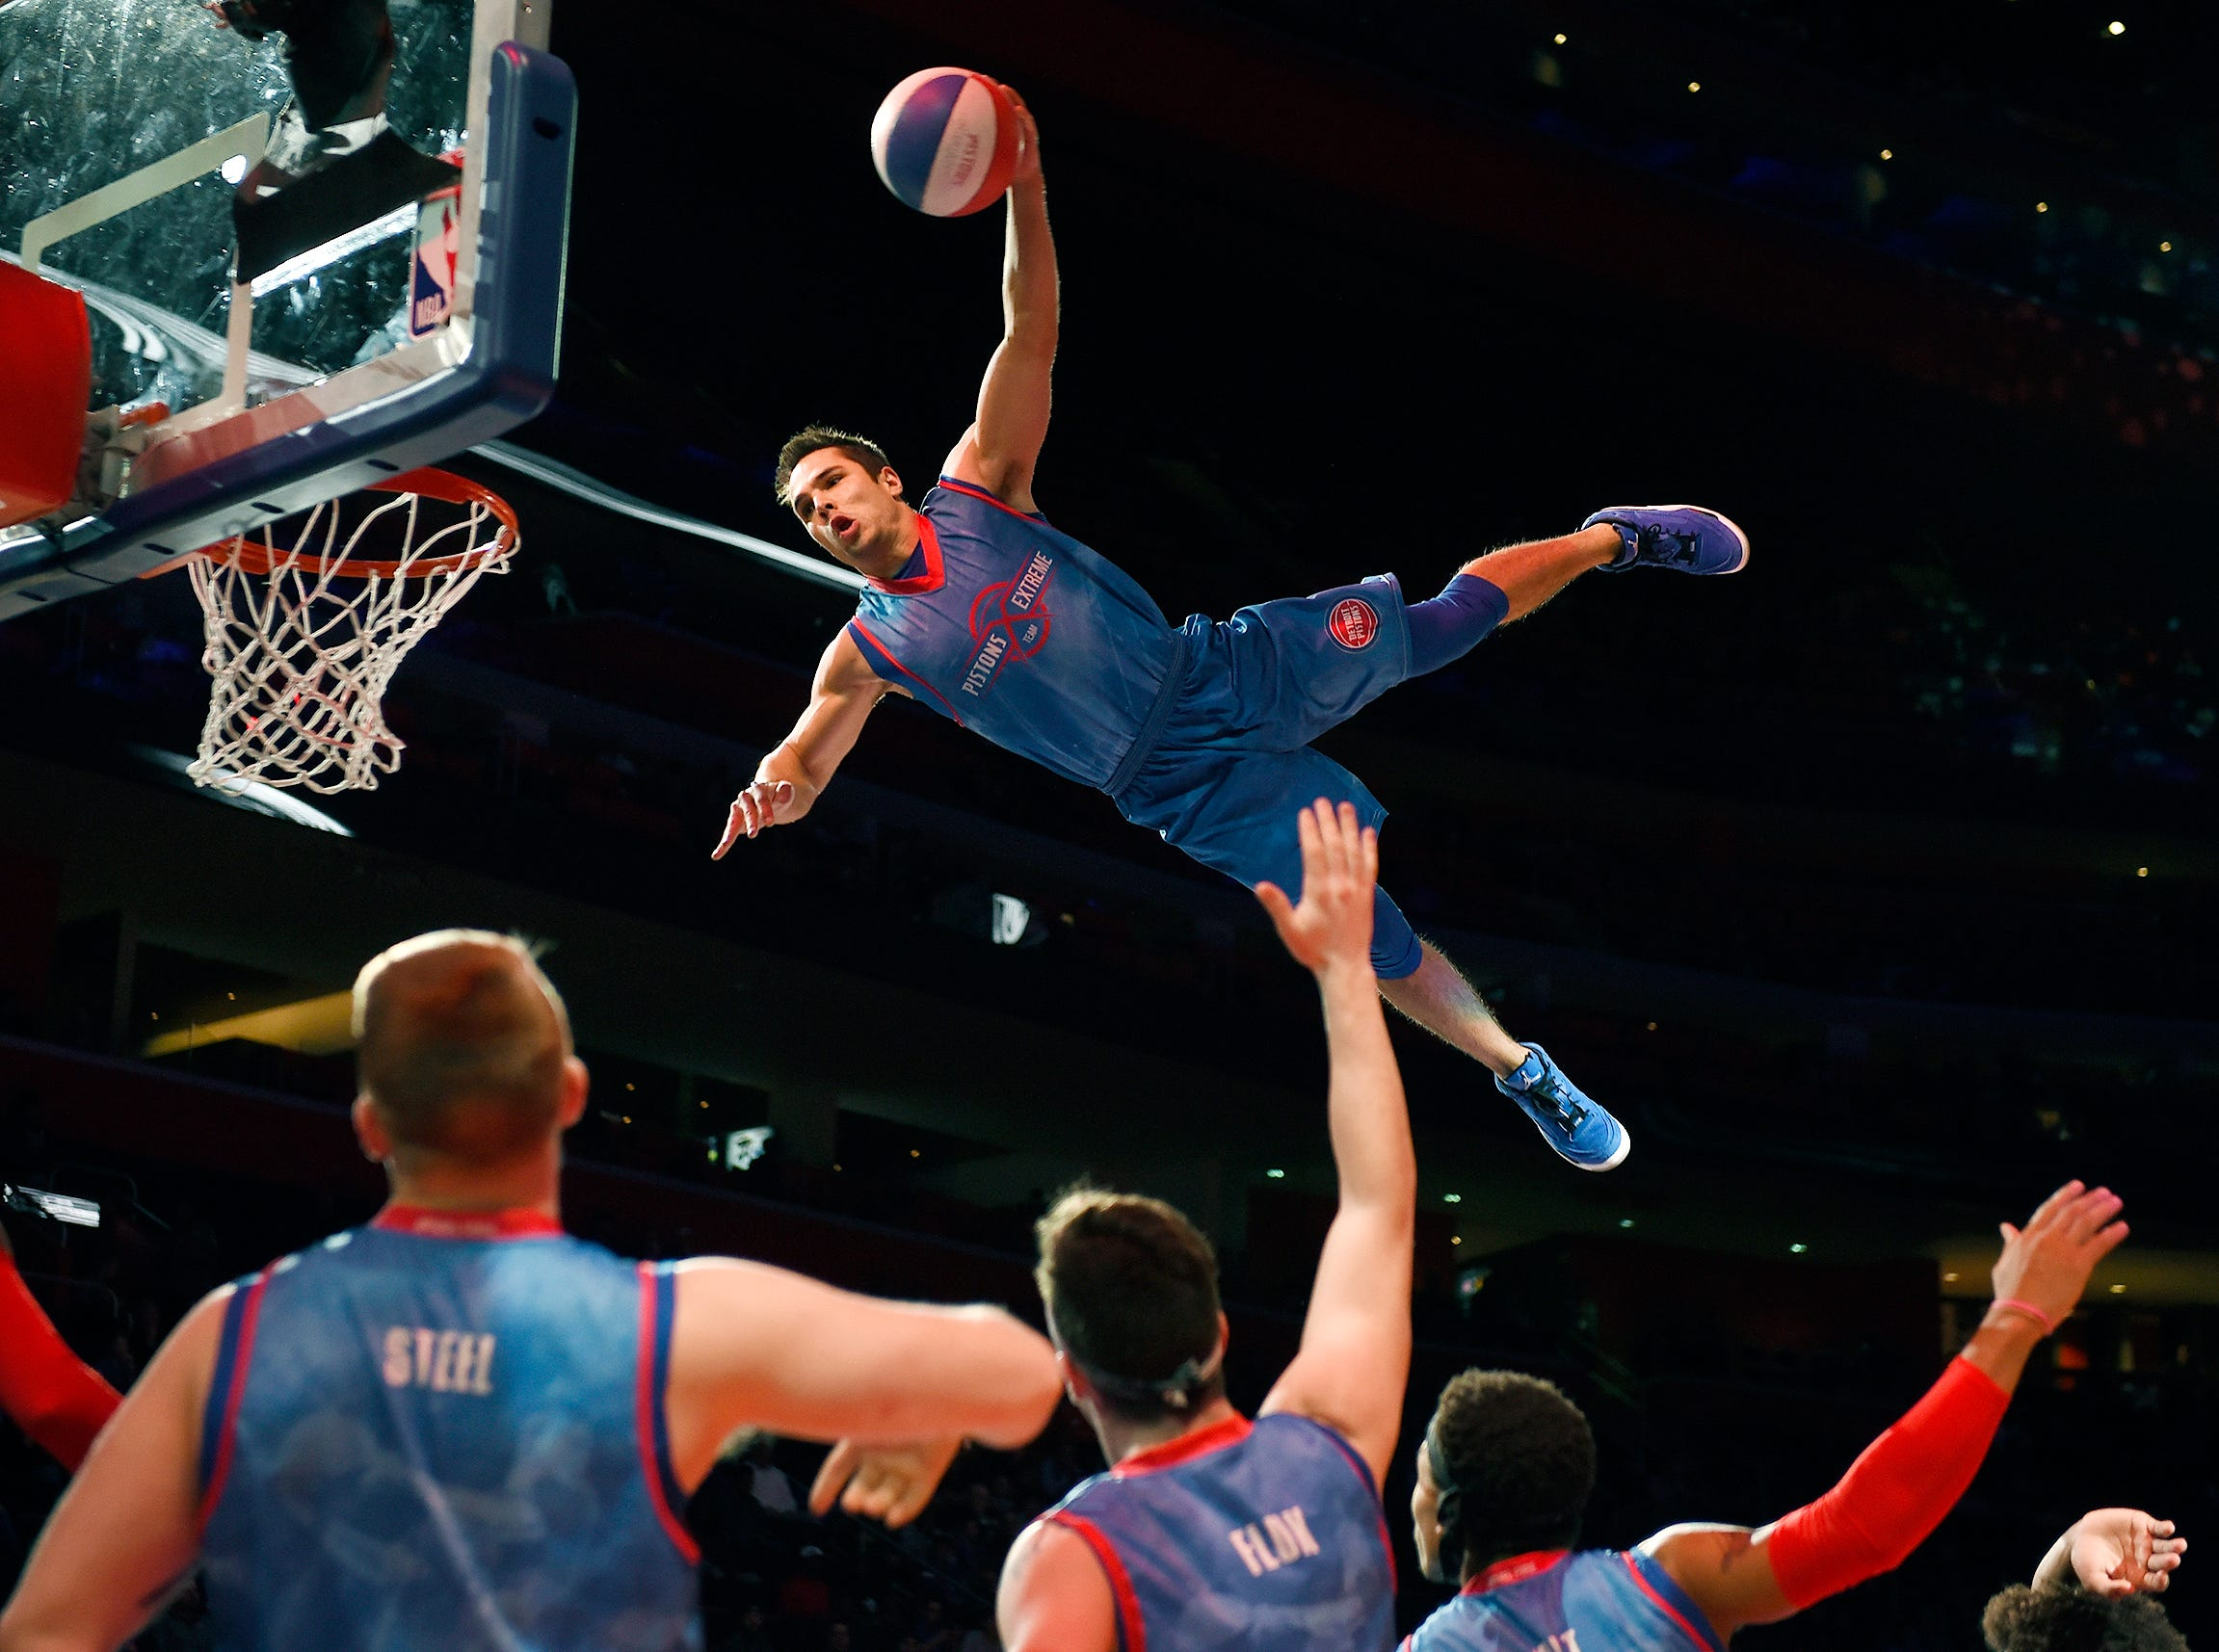 The Pistons Extreme Team performs during a break in the Pistons 118-107 victory over the Phoenix Suns in Detroit, Sunday, November 25, 2018.